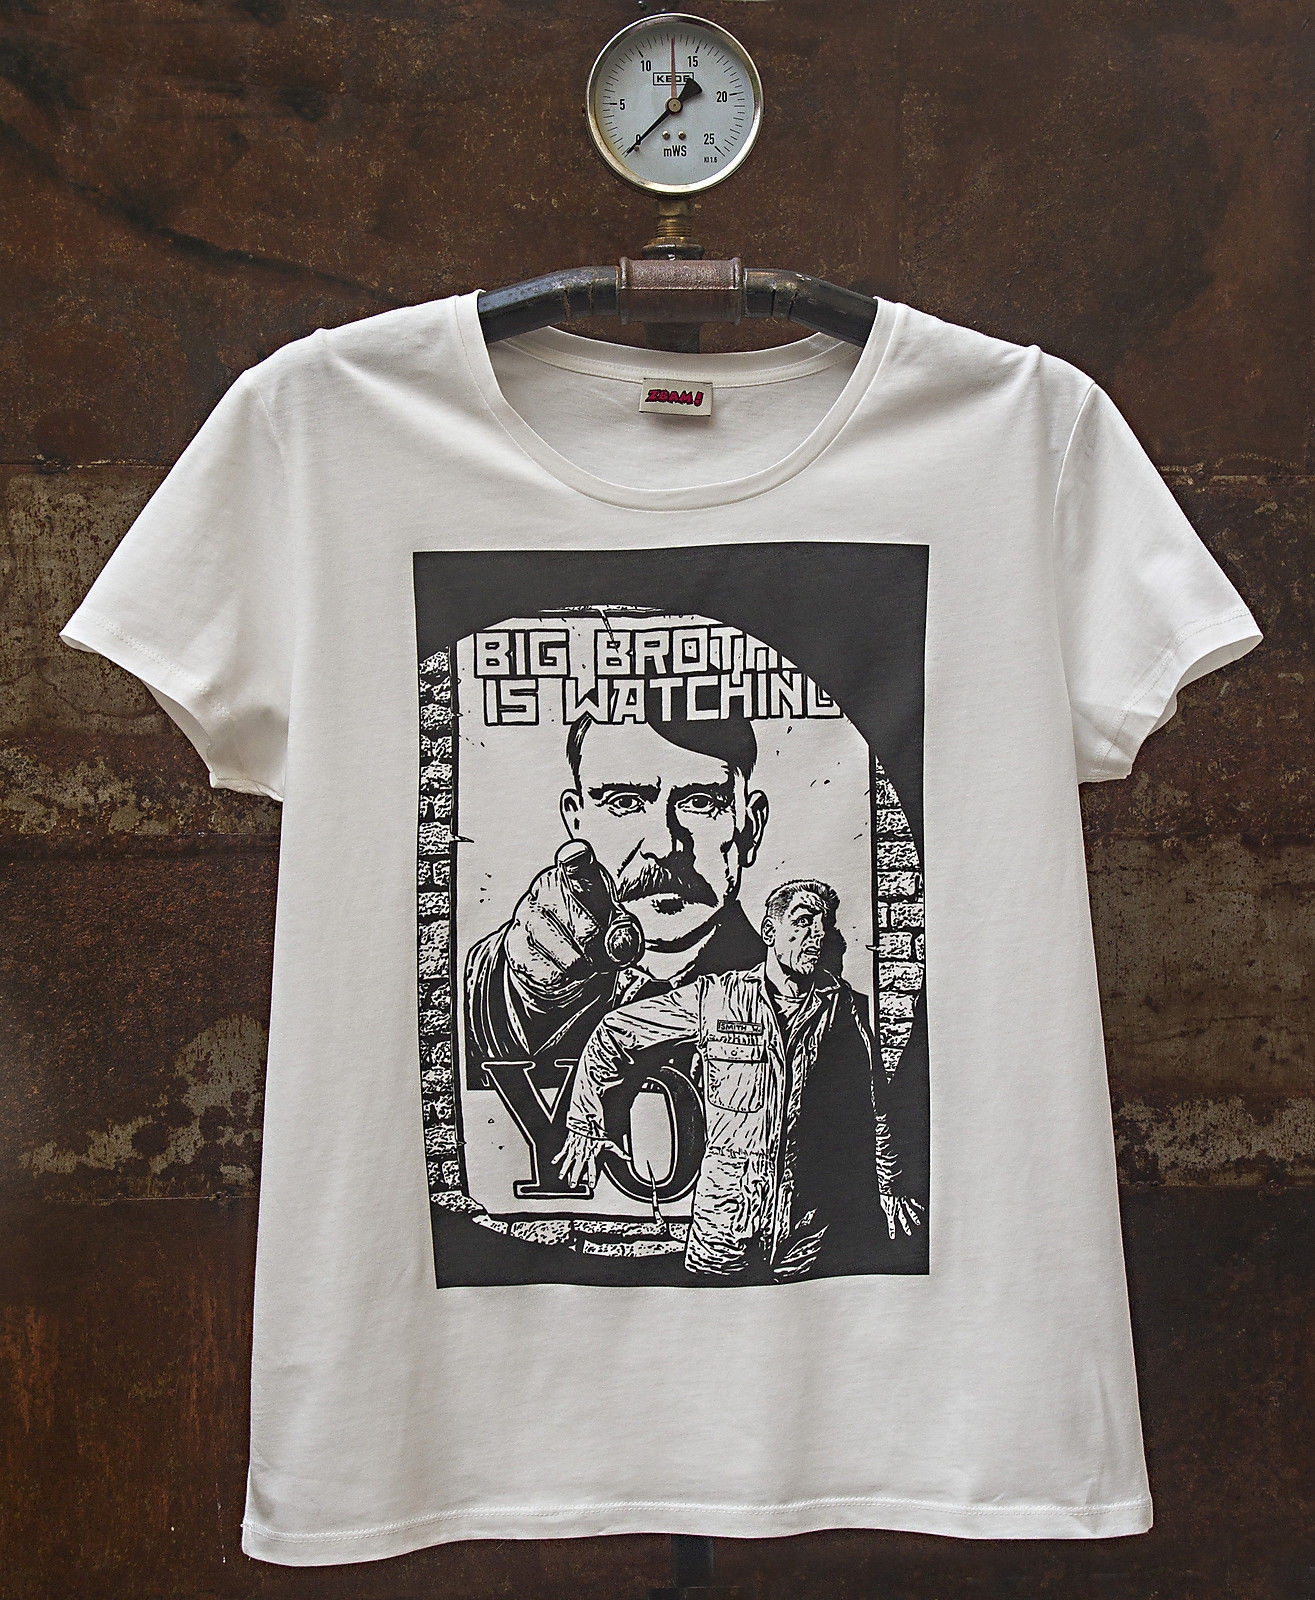 George Orwell 1984 Big Brother Is Watchng You Mens T Shirt 2018 New Pure Cotton Short Sleeves Hip Hop Fashion In Shirts From